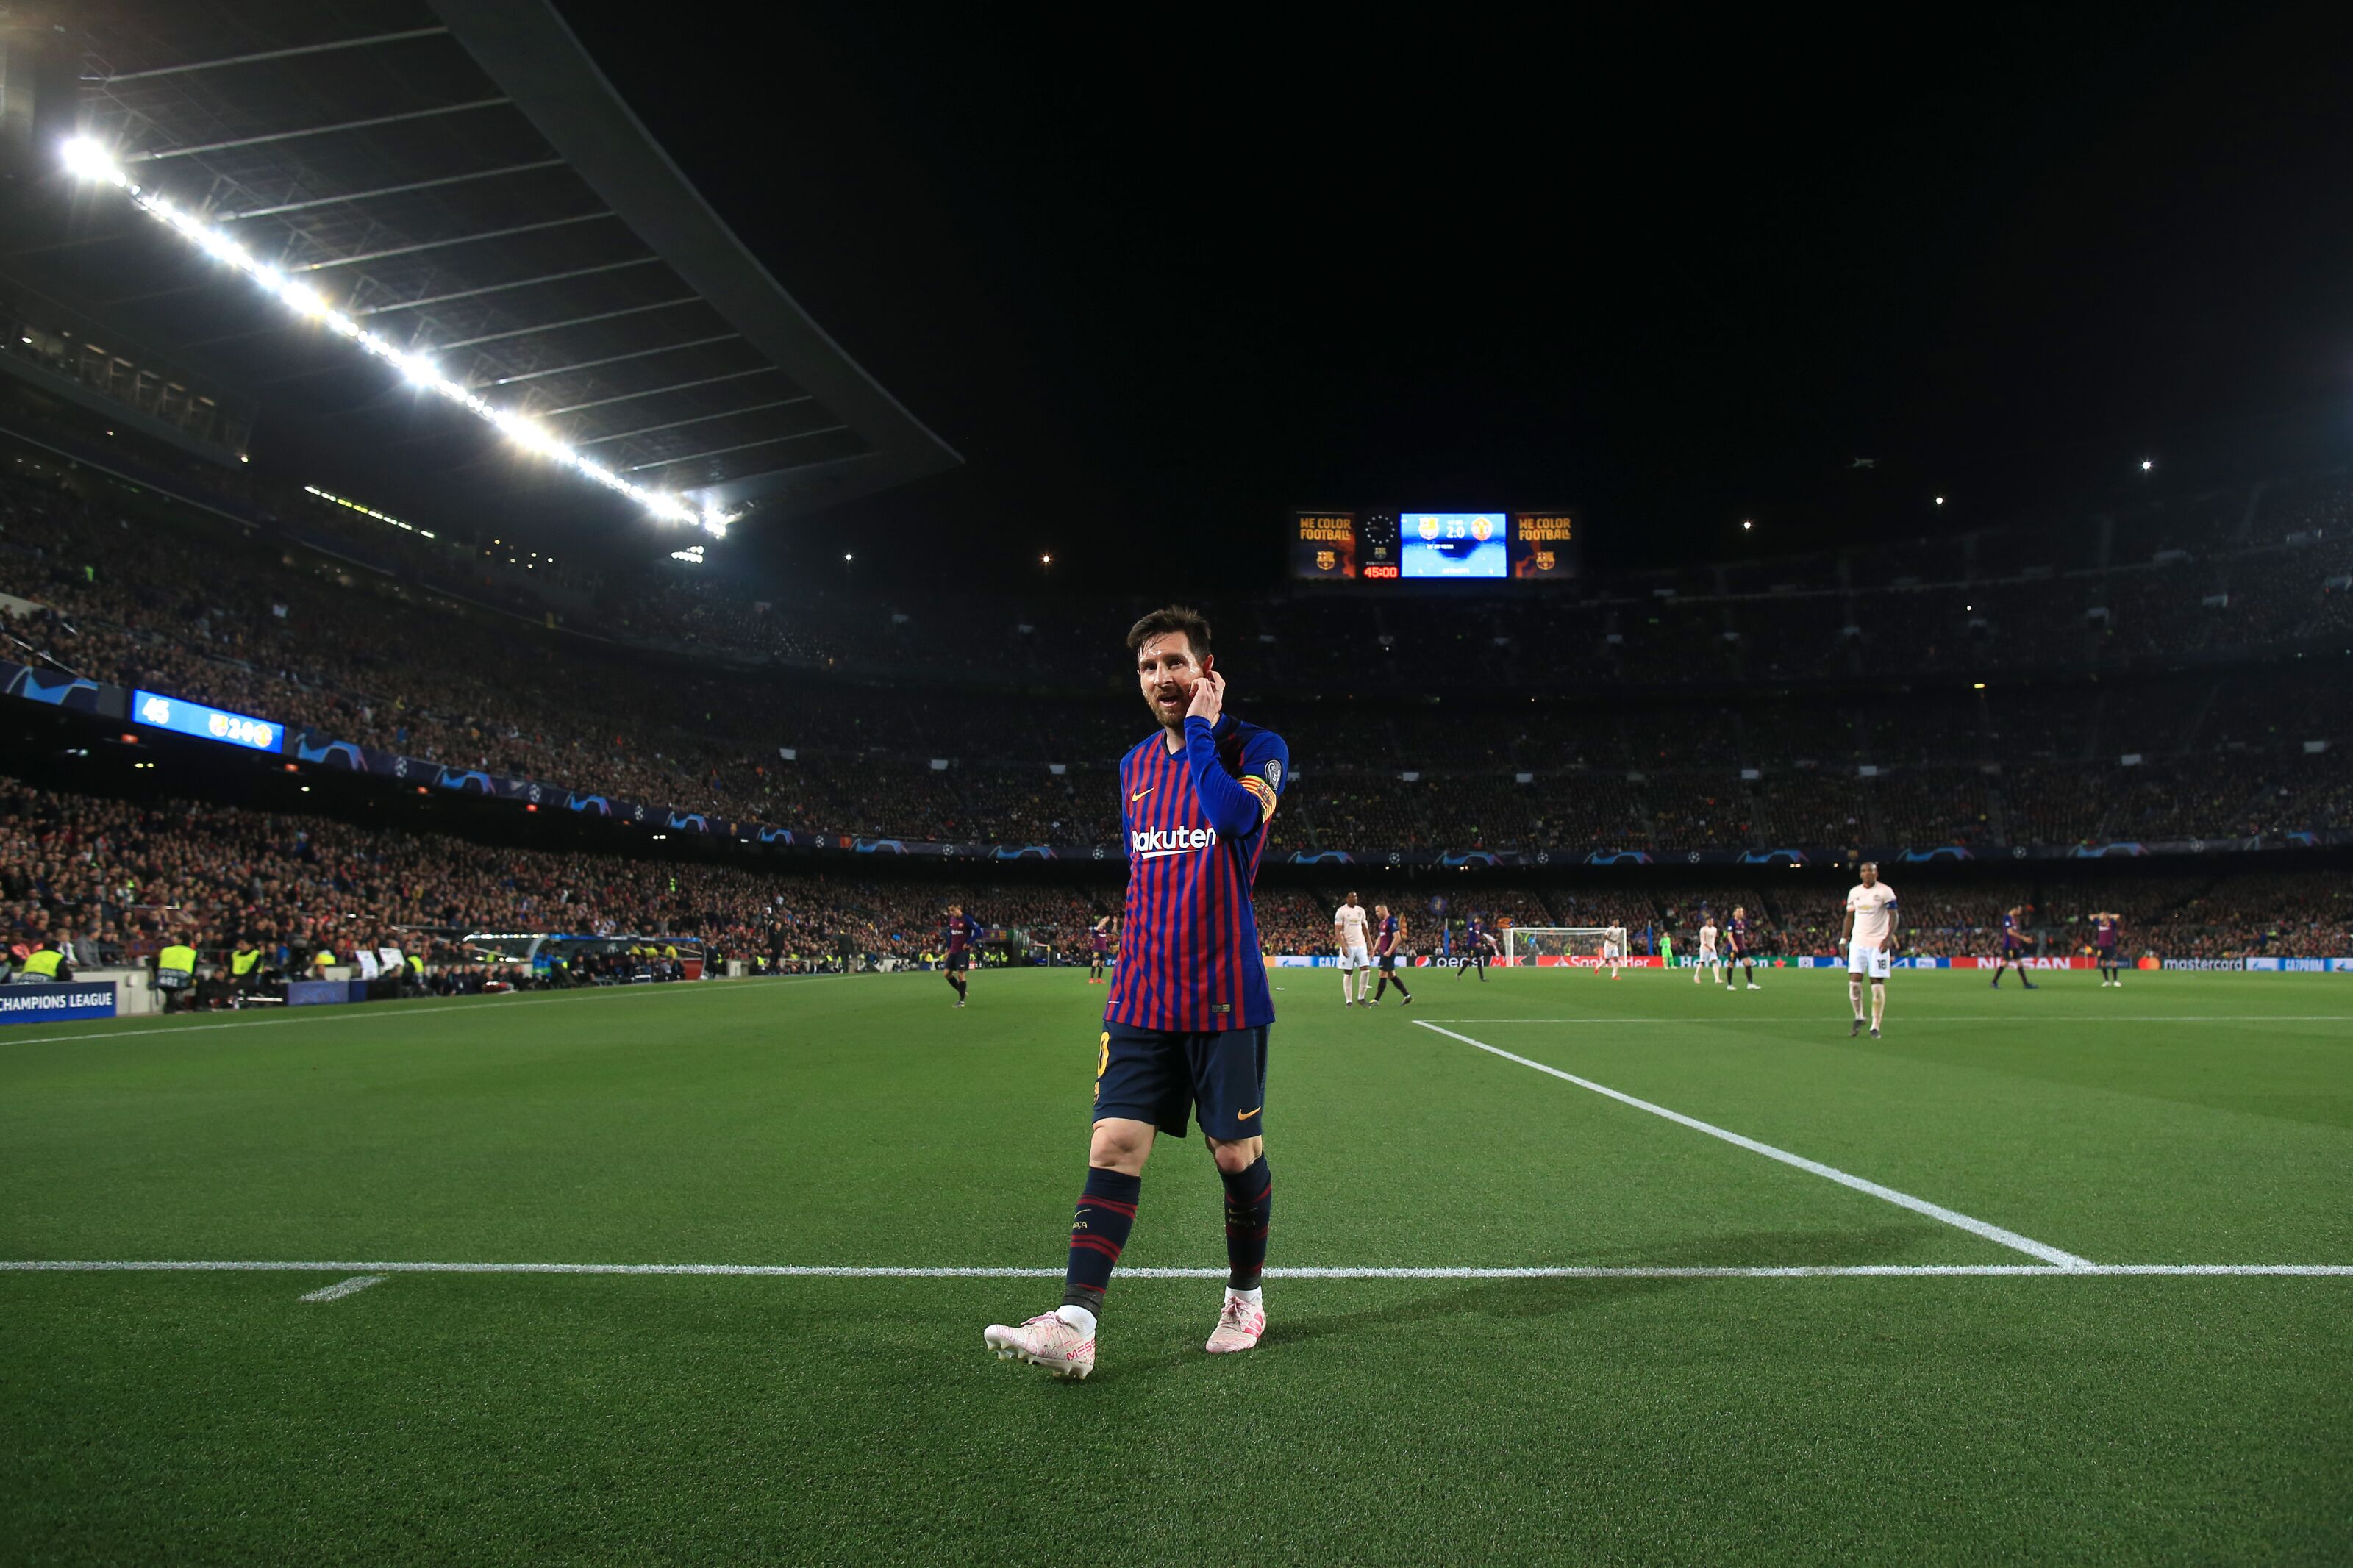 Barcelona to use Lionel Messi as bait in order to complete super signing